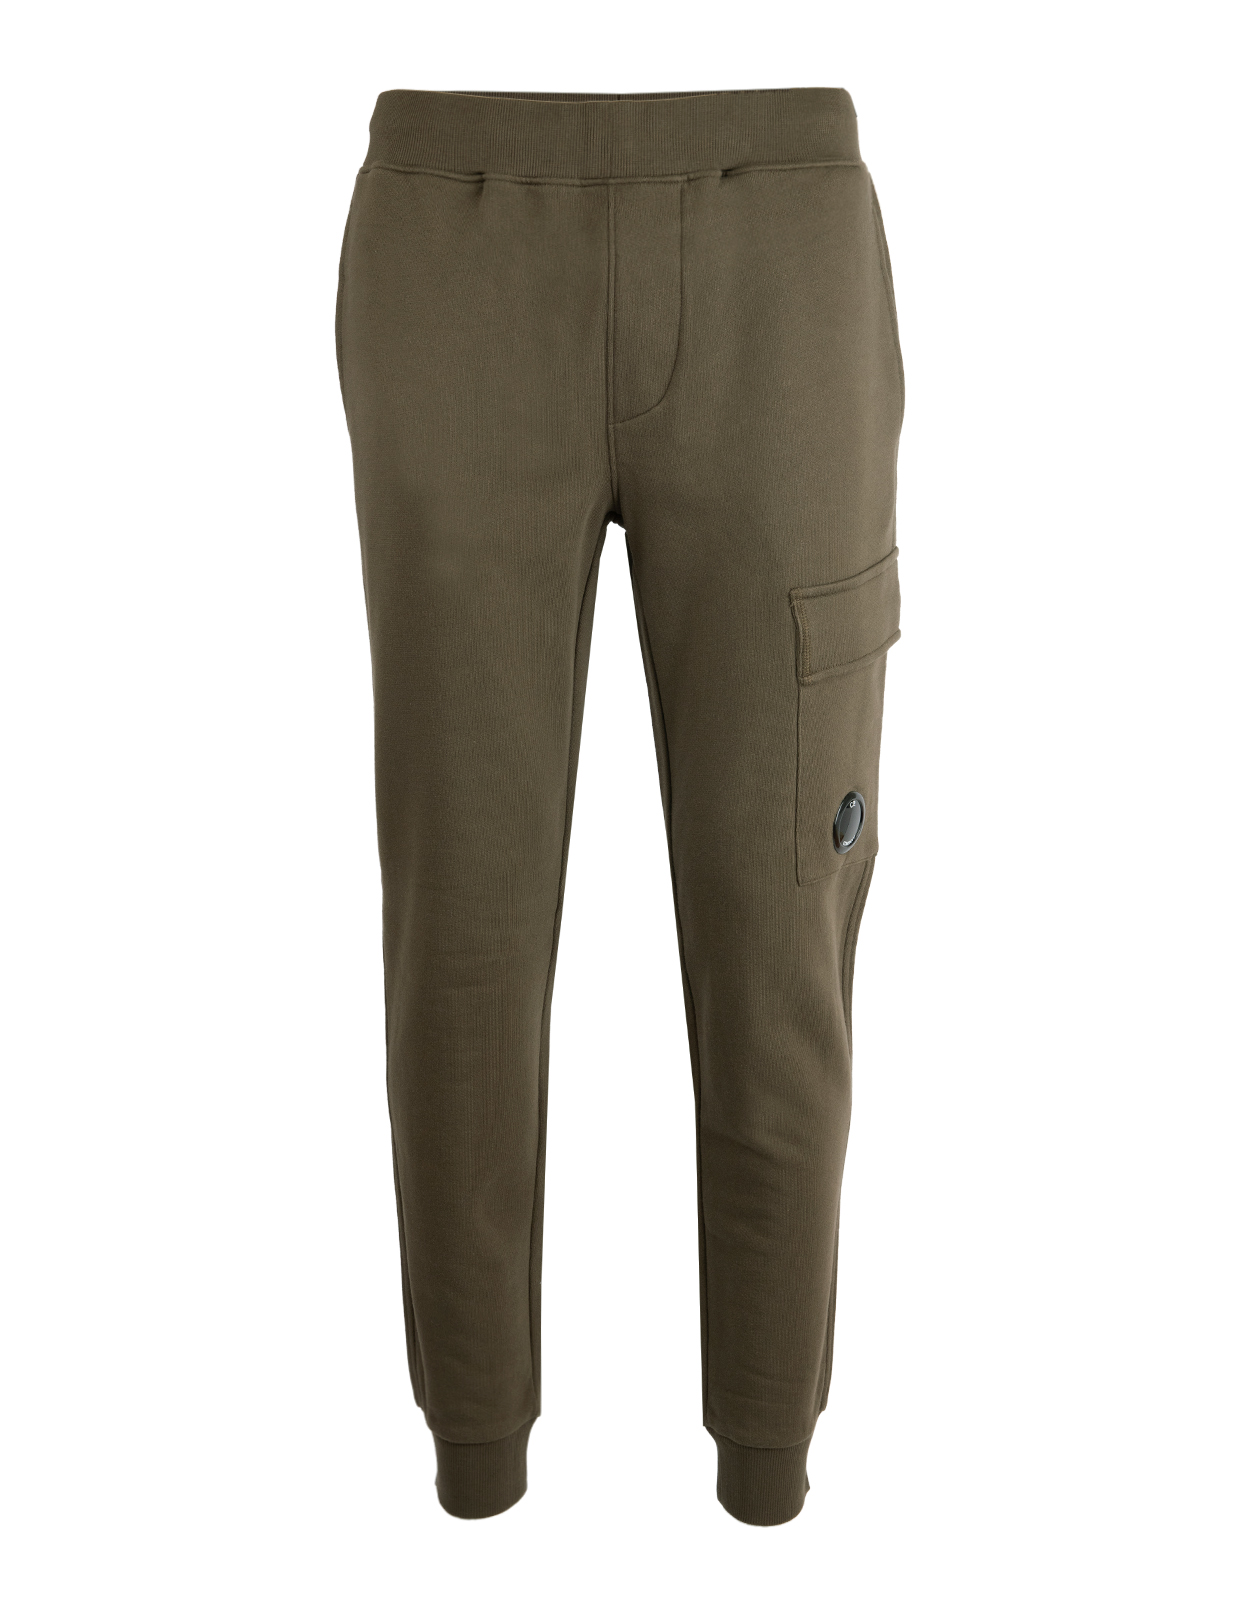 Lens Pocket Sweatpants Army